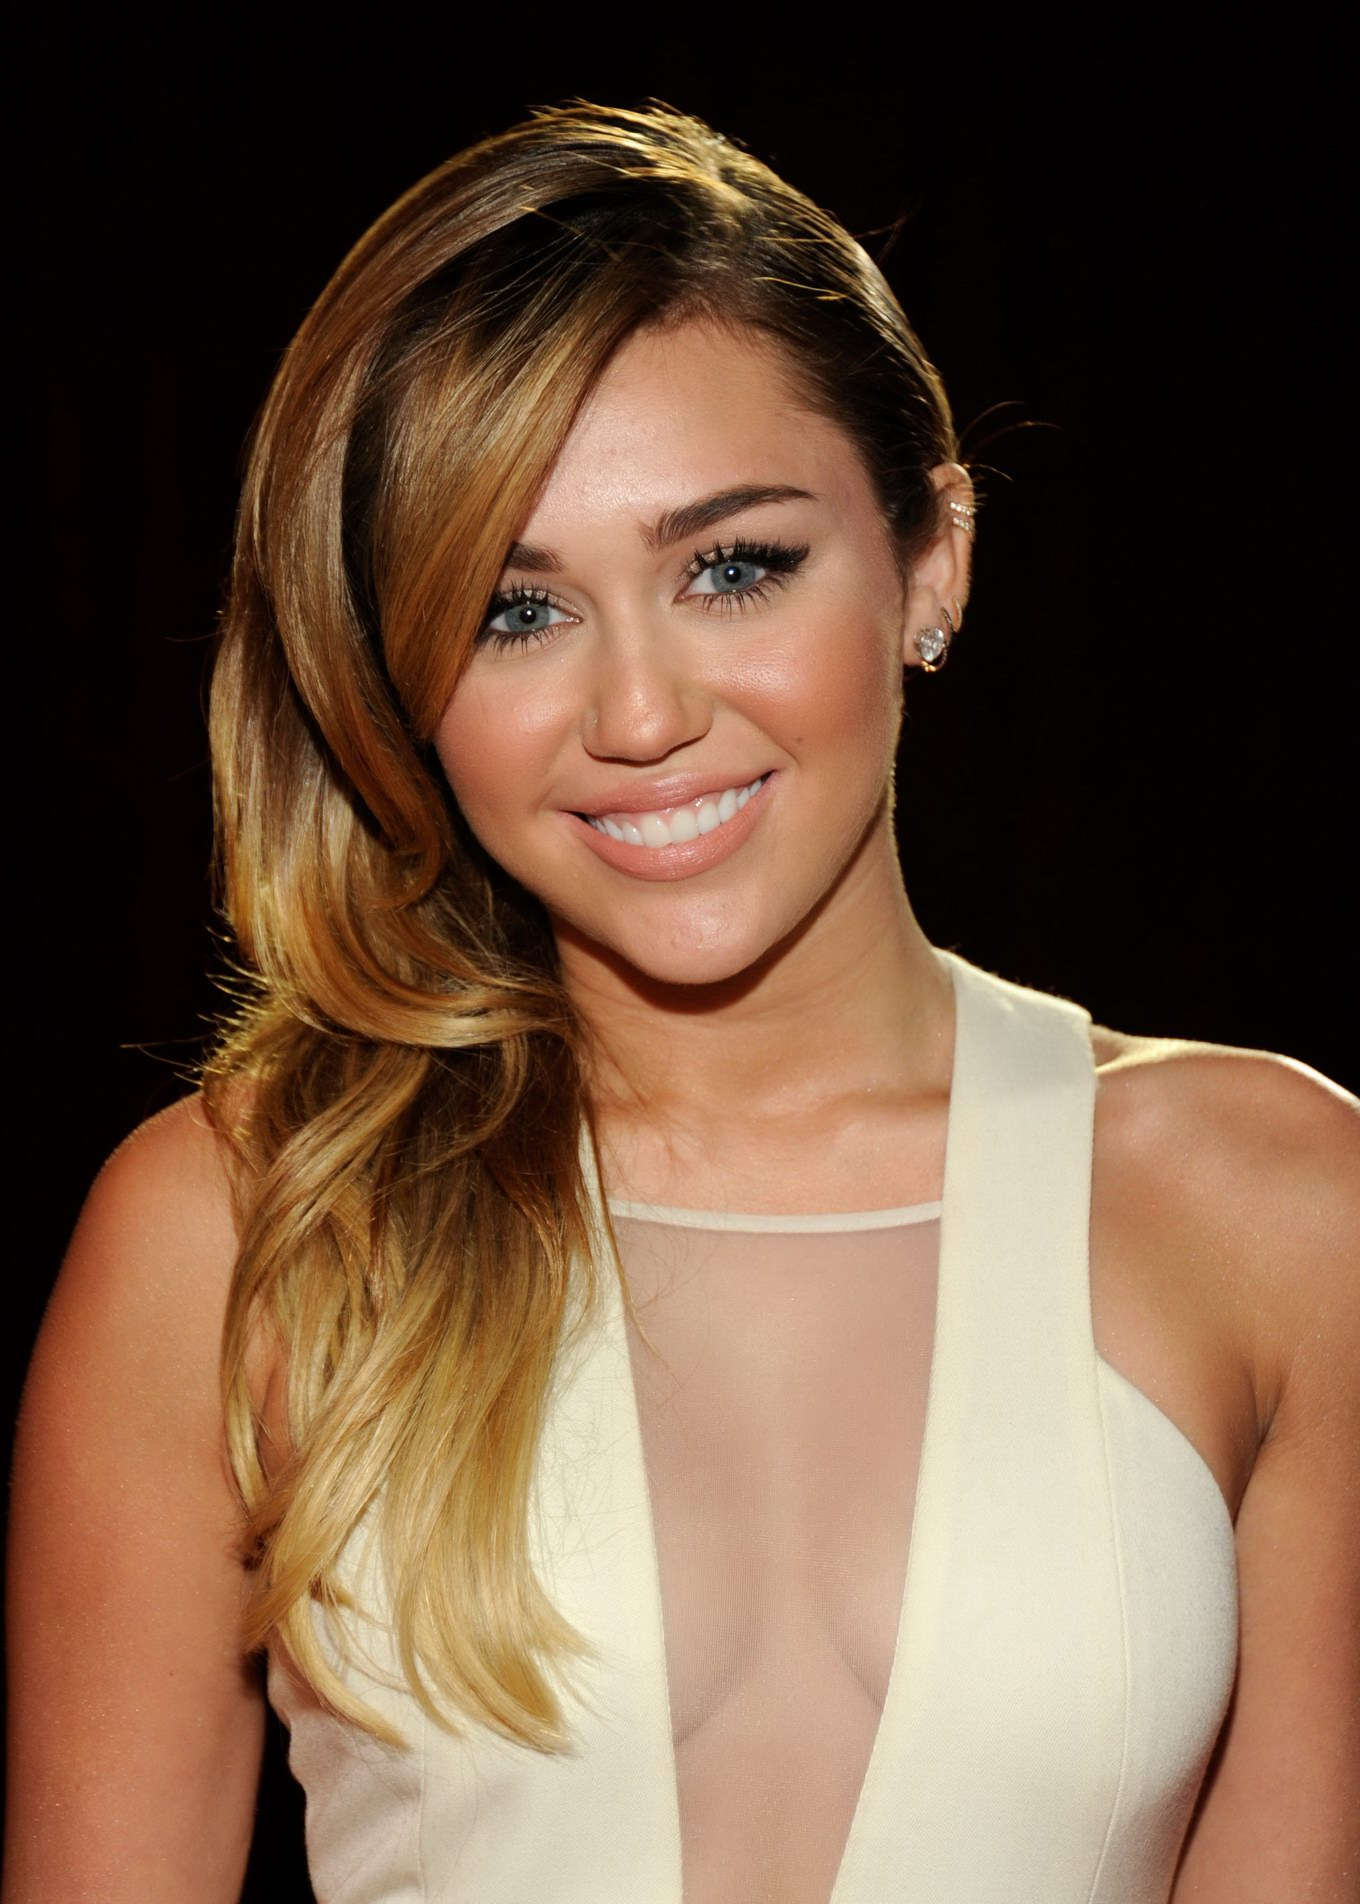 Miley Cyrus Showing Cleavage At The 2012 People's Choice